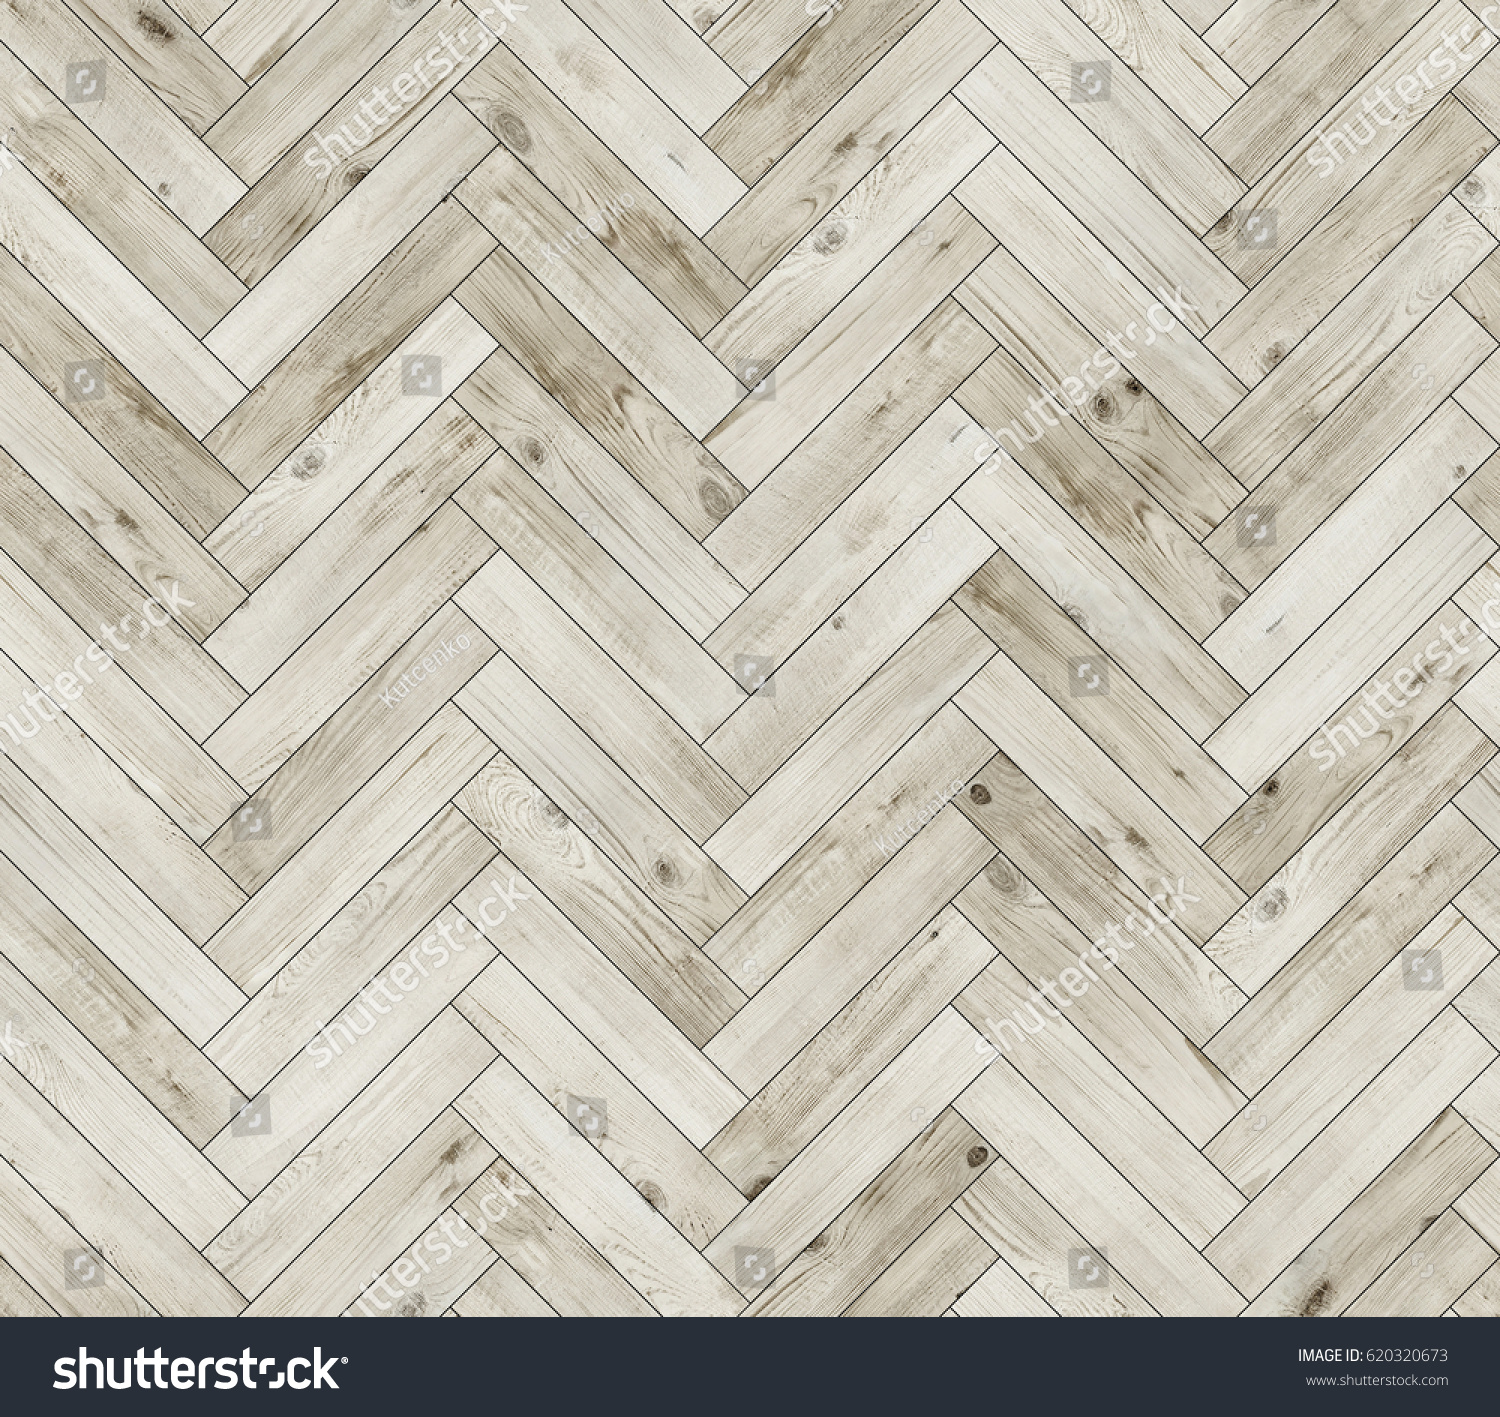 herringbone bleached natural parquet seamless floor stock photo 620320673 shutterstock. Black Bedroom Furniture Sets. Home Design Ideas